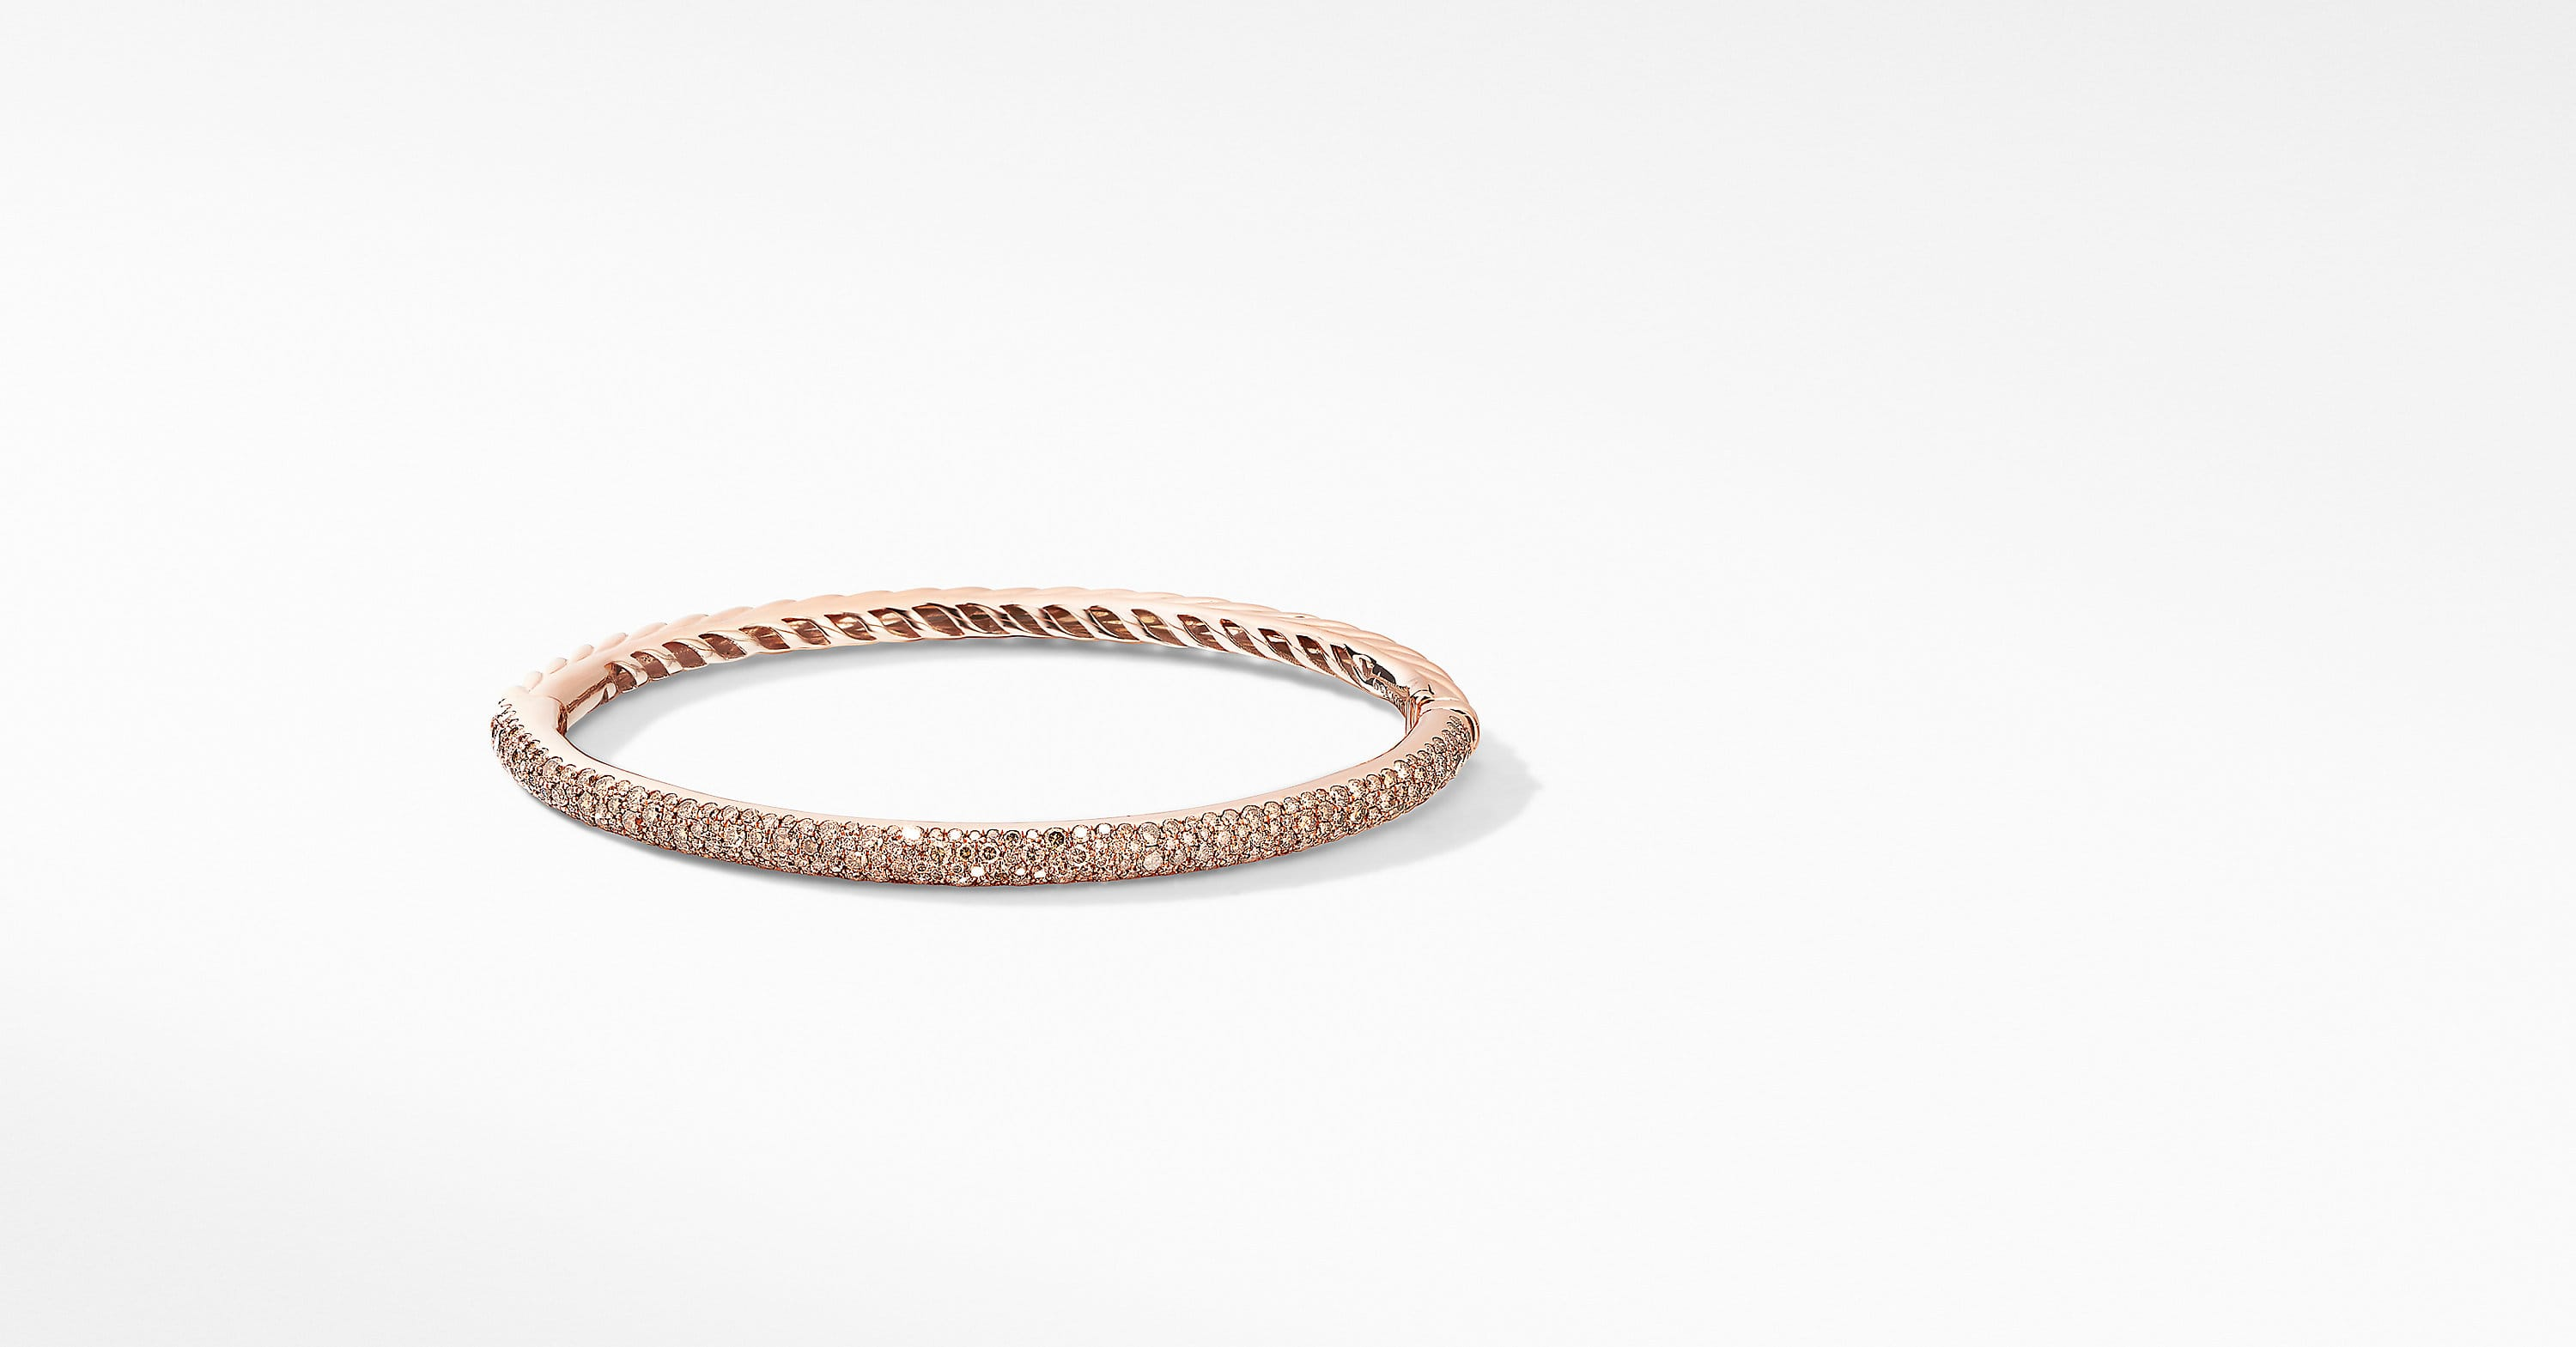 Cable Hinged Bangle Bracelet in 18K Rose Gold with Pavé